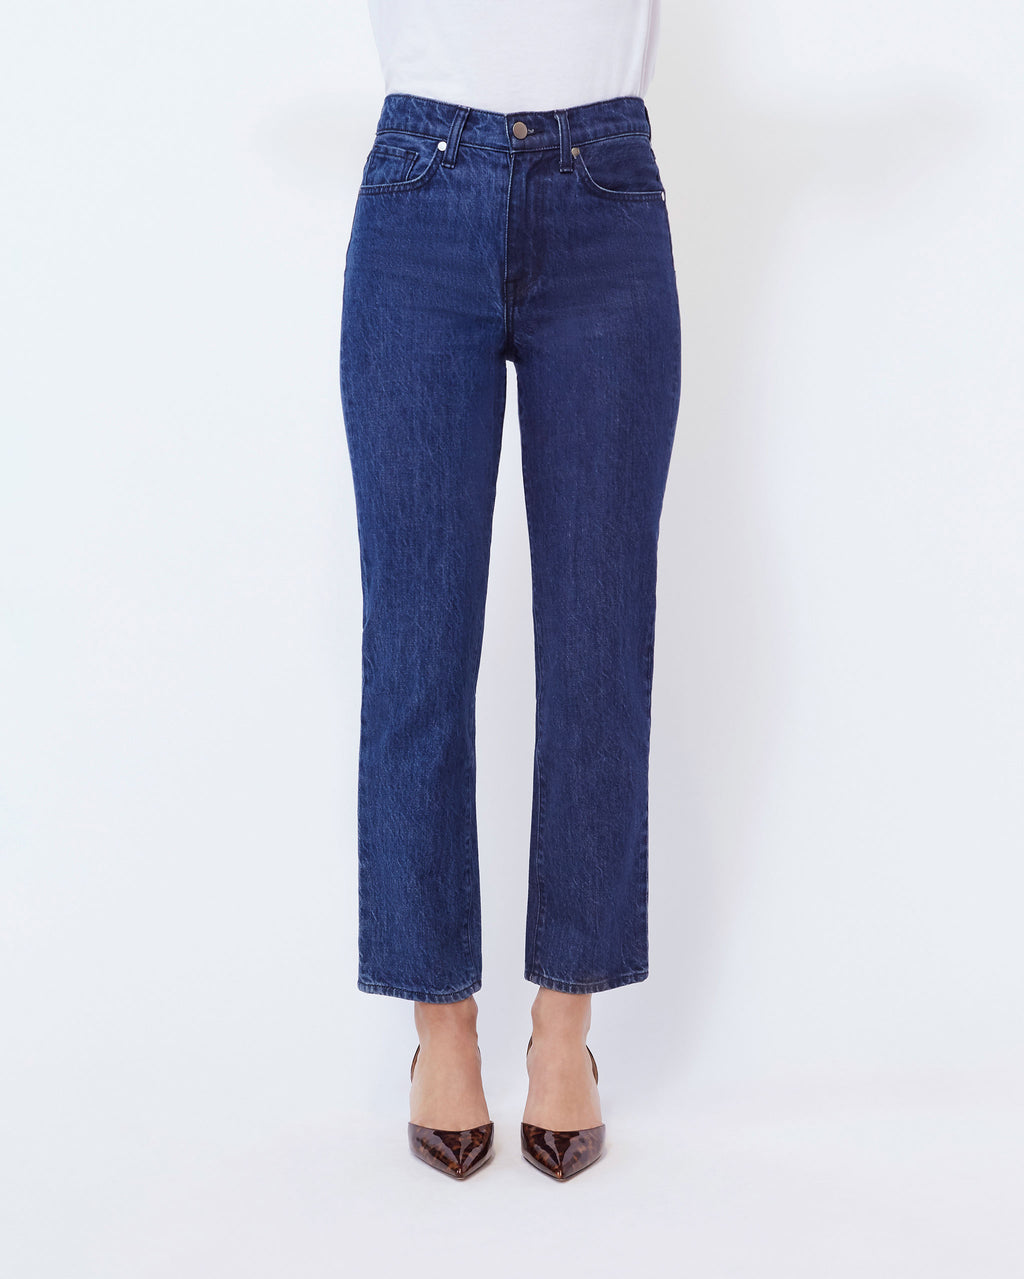 The Vintage Straight Jean in Enigma